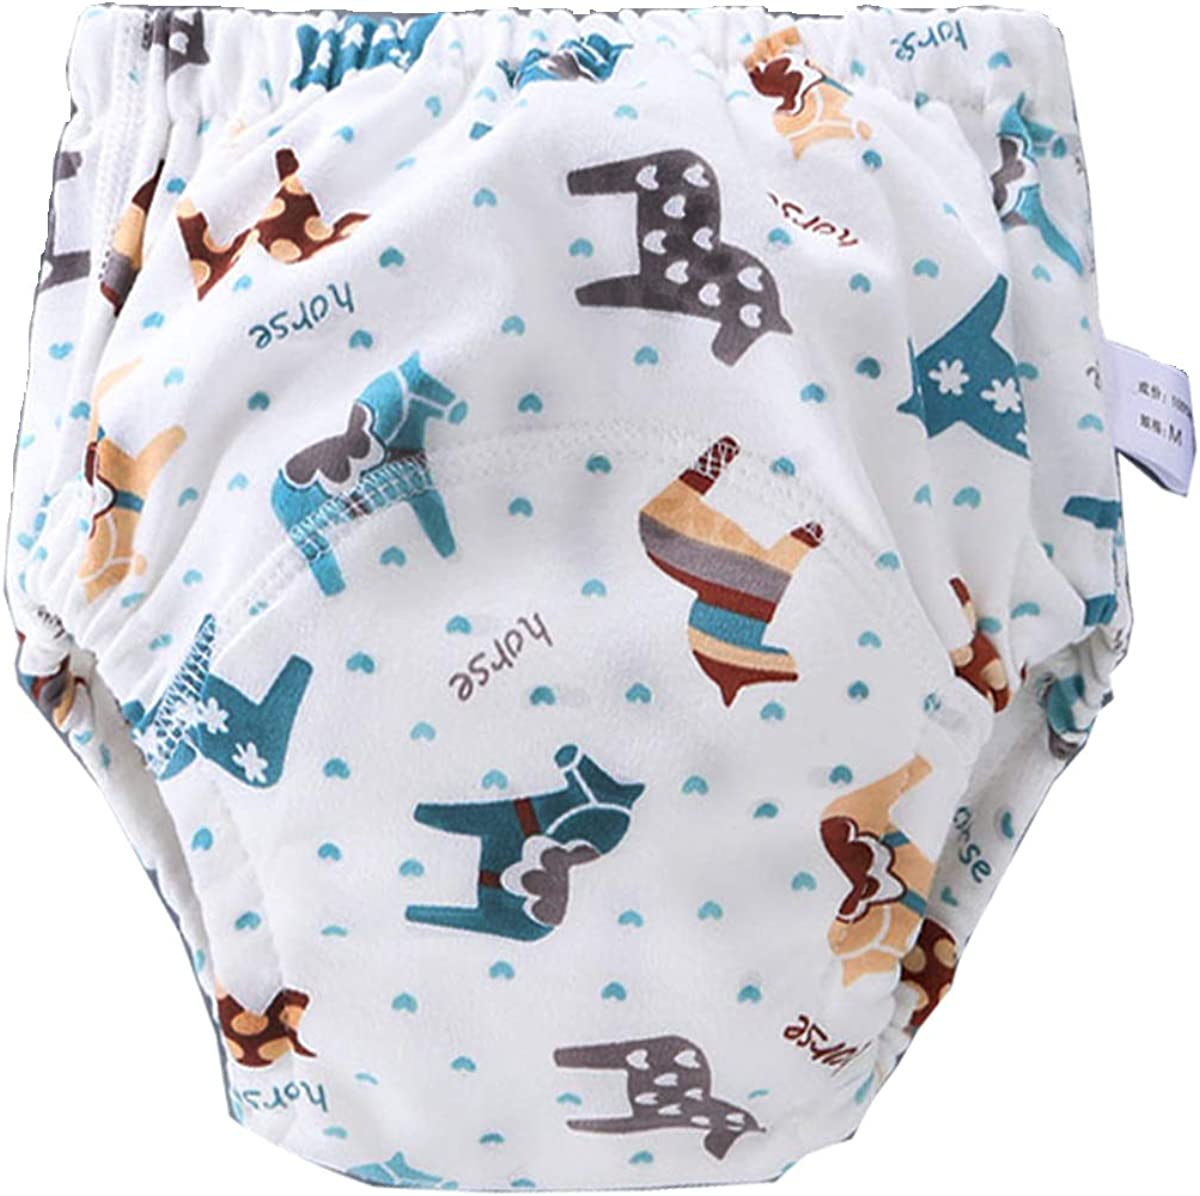 6 Pack Potty Training Pants for Boys Girls Learning Designs Training Underwear Pants 1T-5.5T